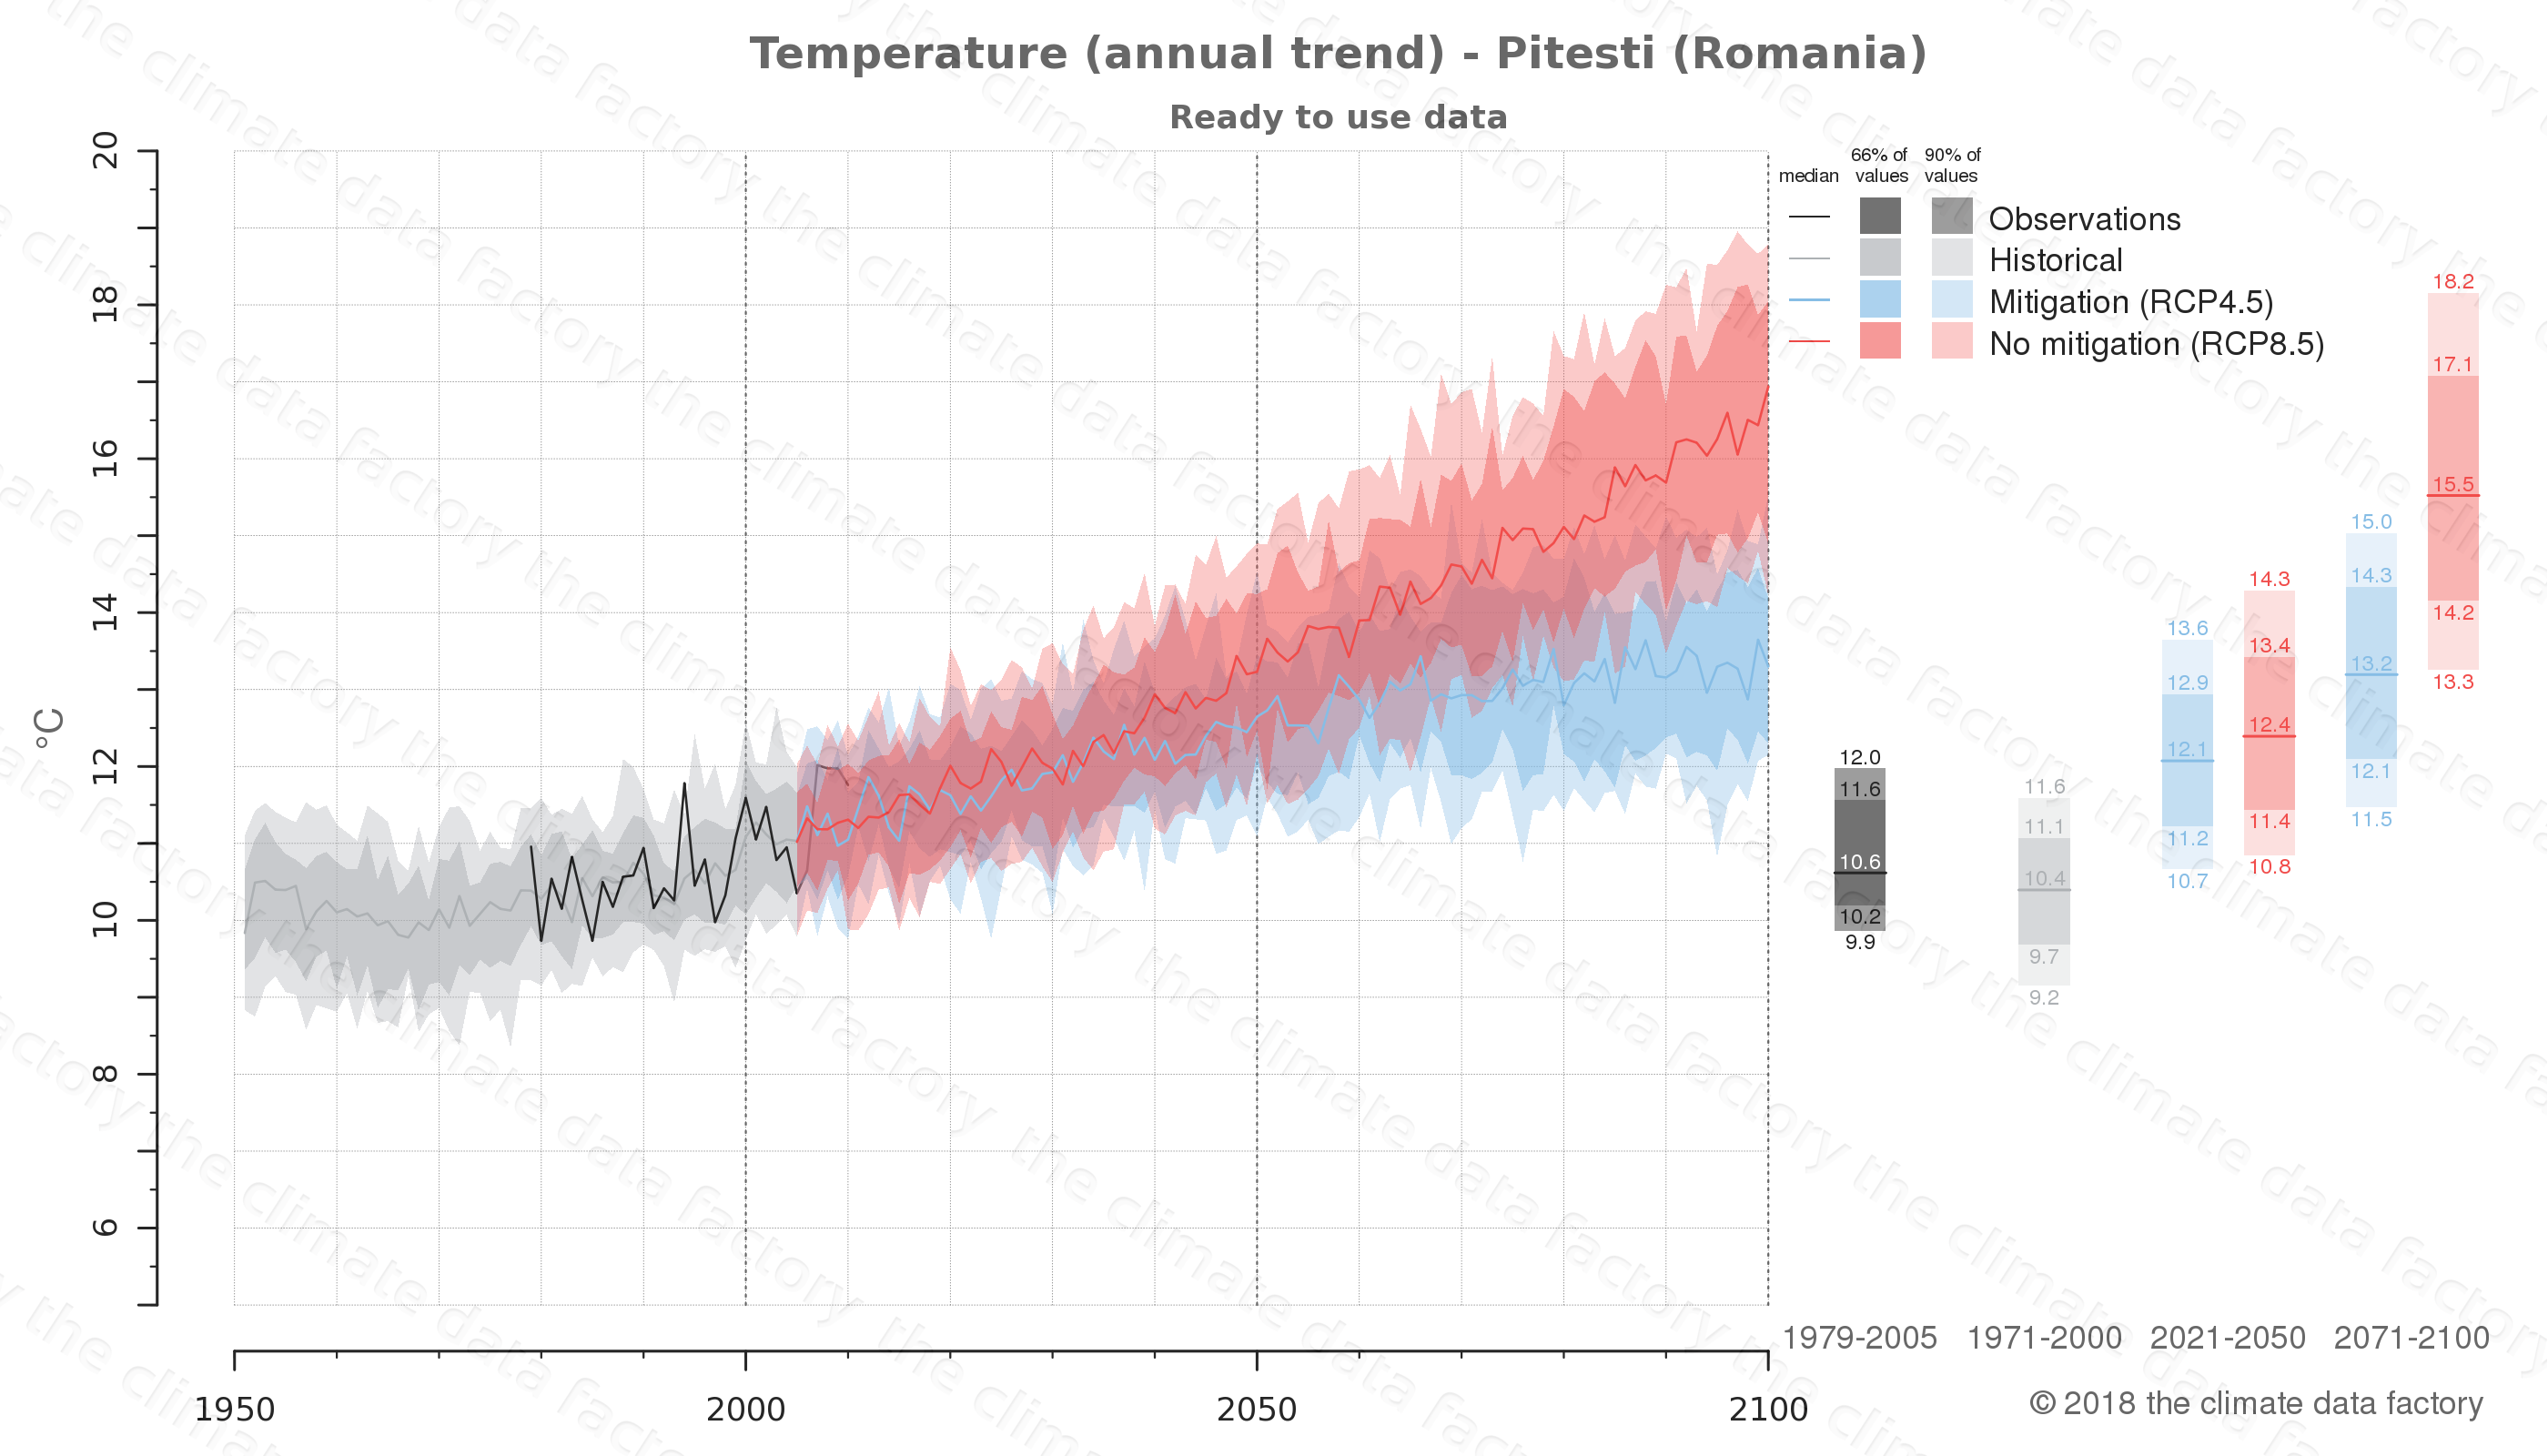 climate change data policy adaptation climate graph city data temperature pitesti romania